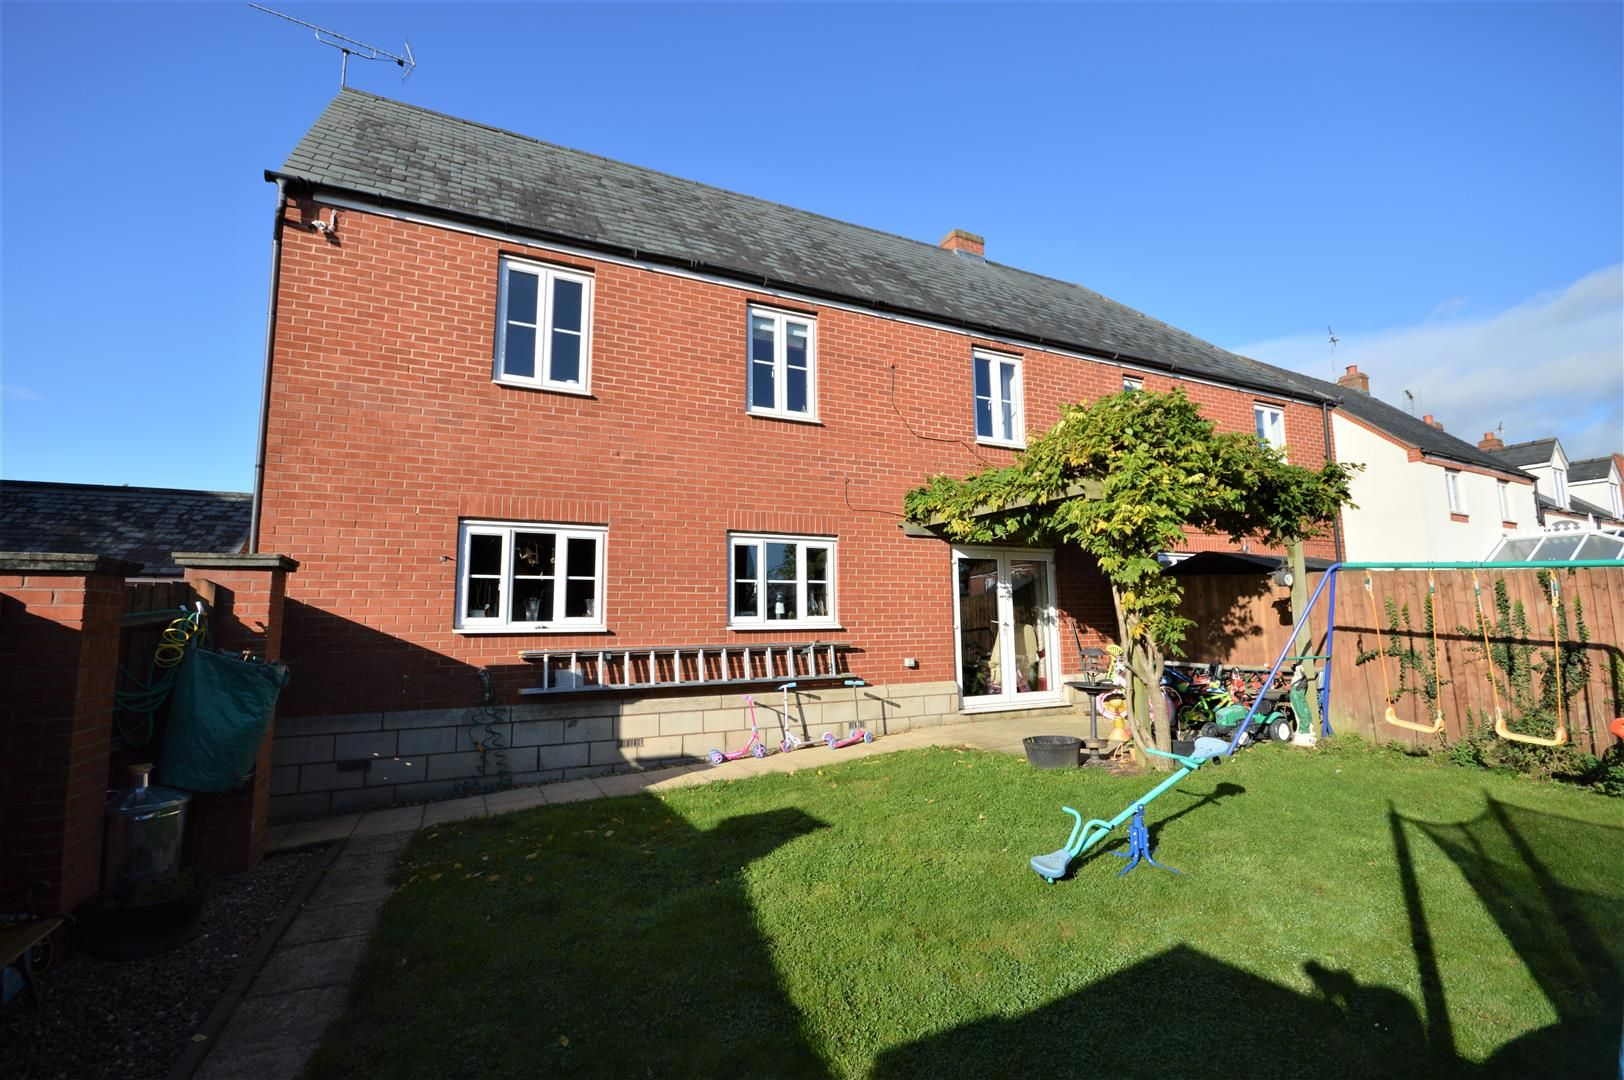 4 bed semi-detached for sale in Leominster  - Property Image 7